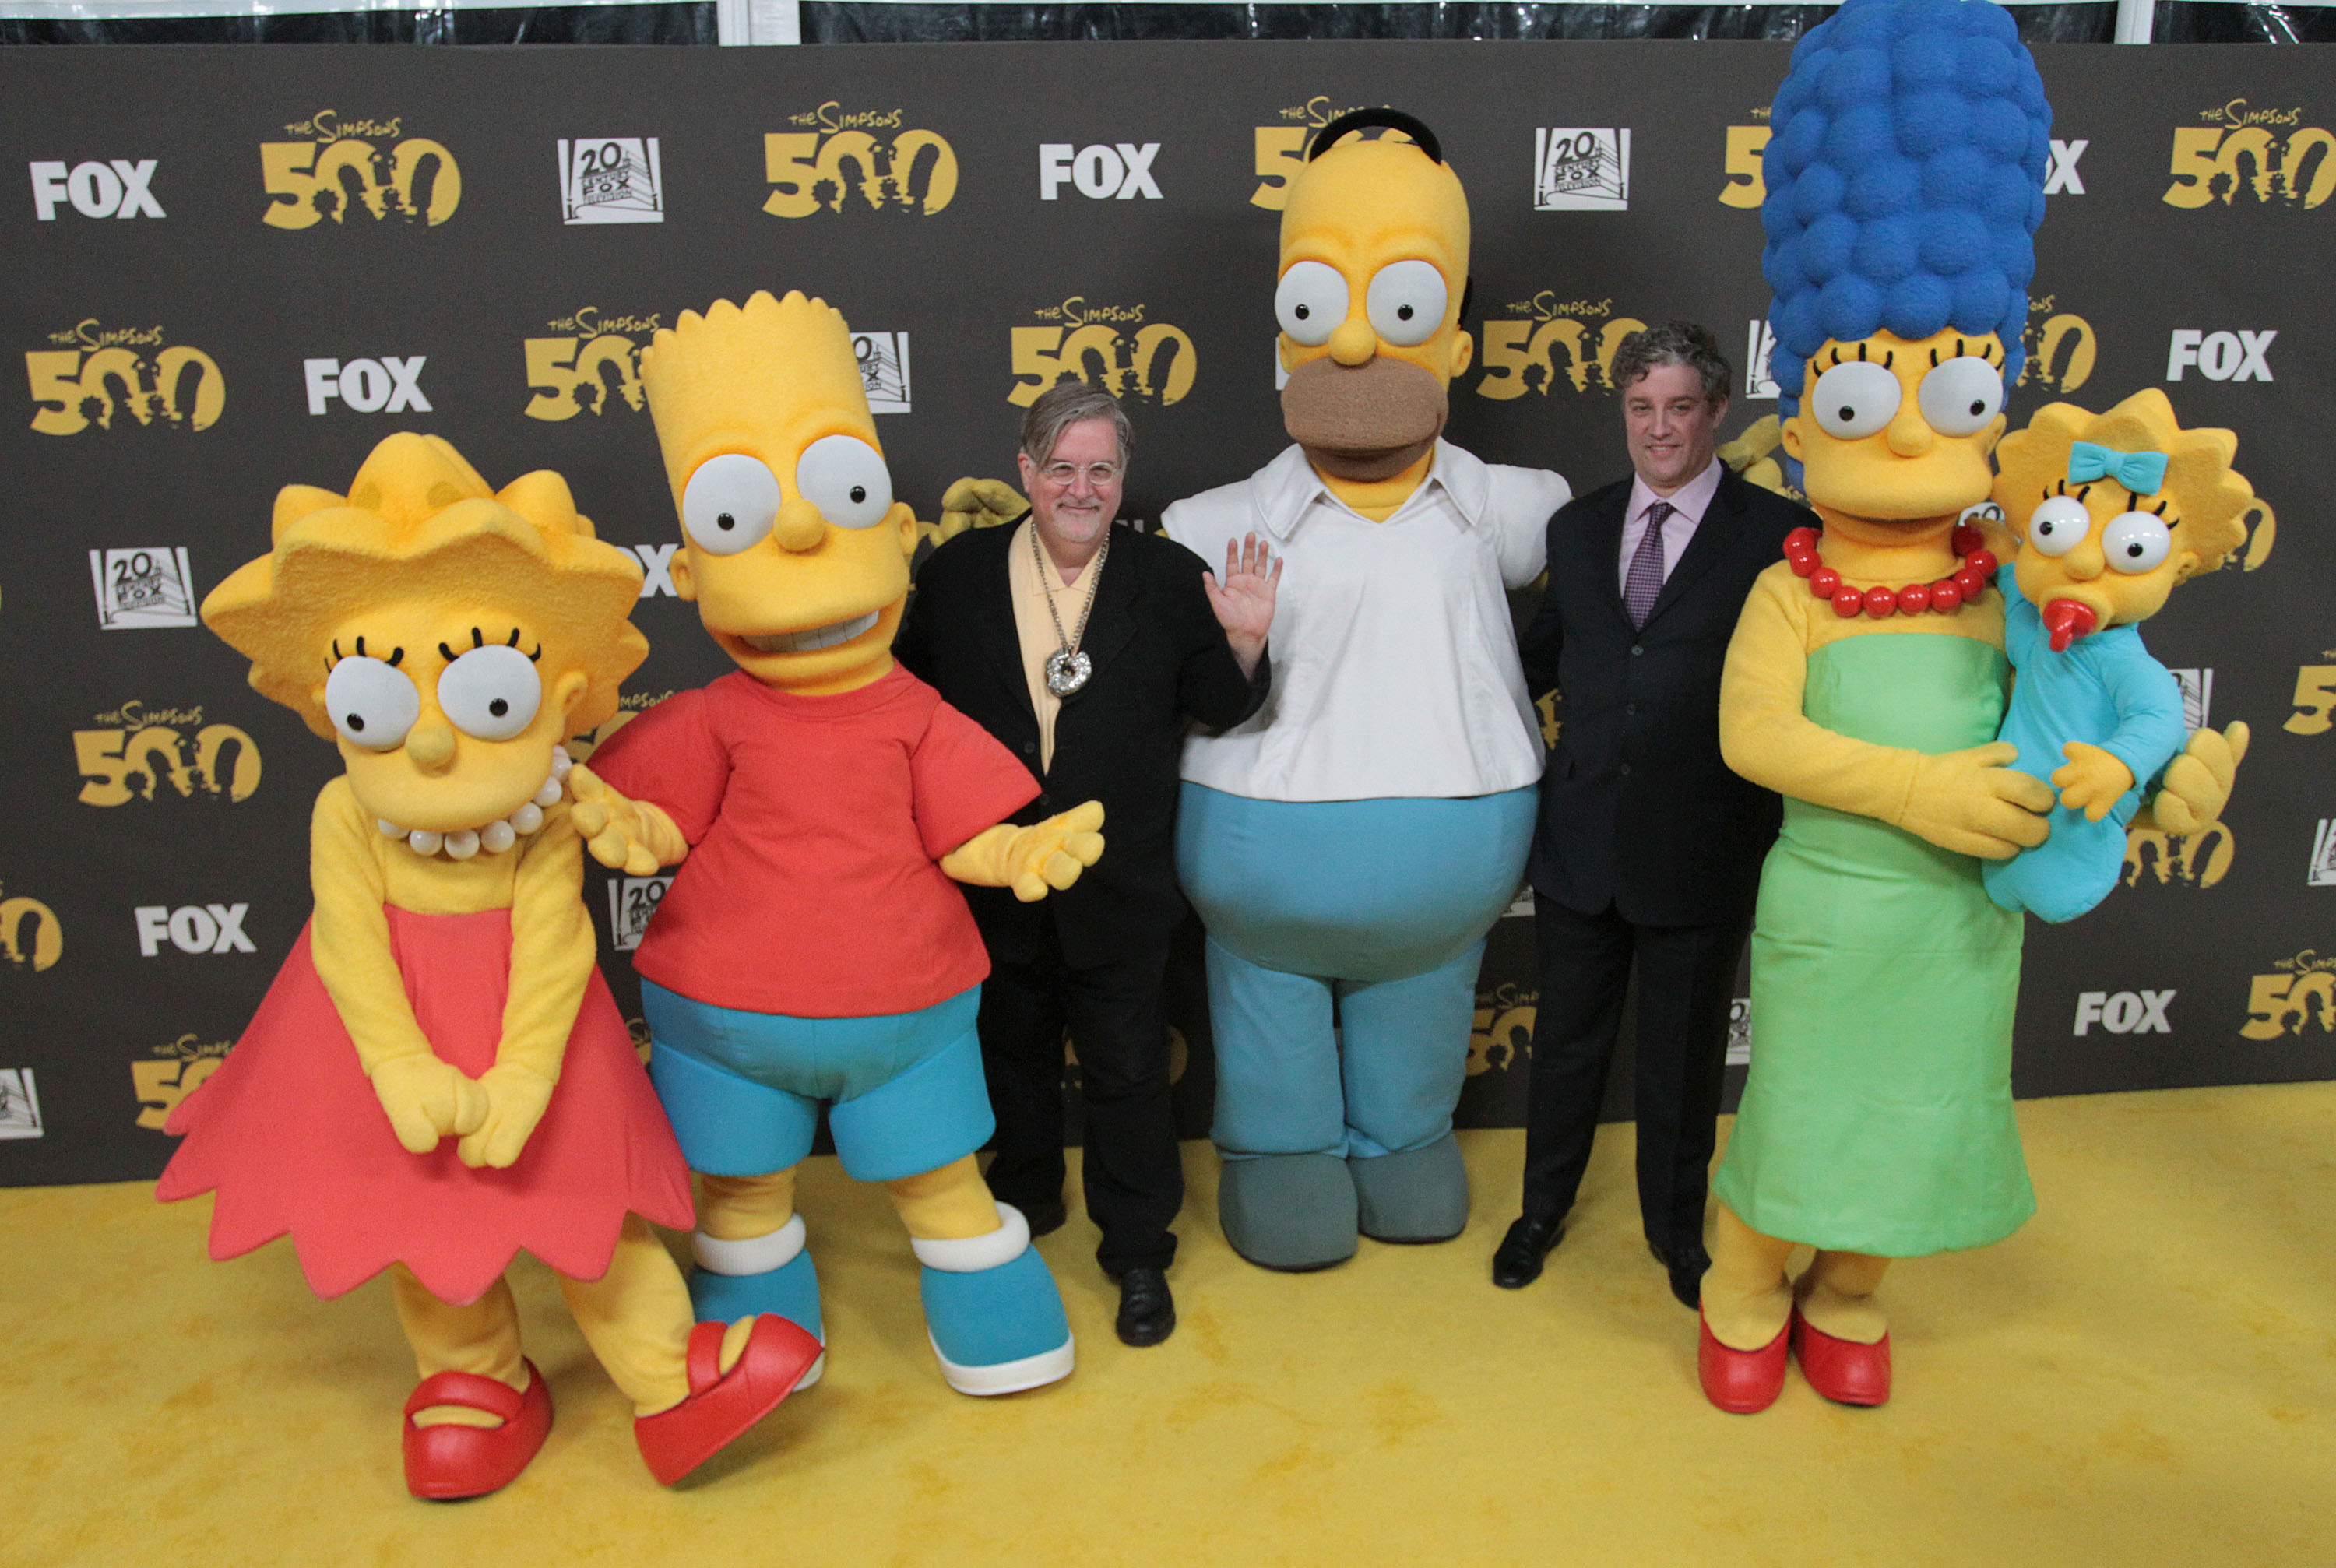 the simpson family & the respective strains of weed that match their